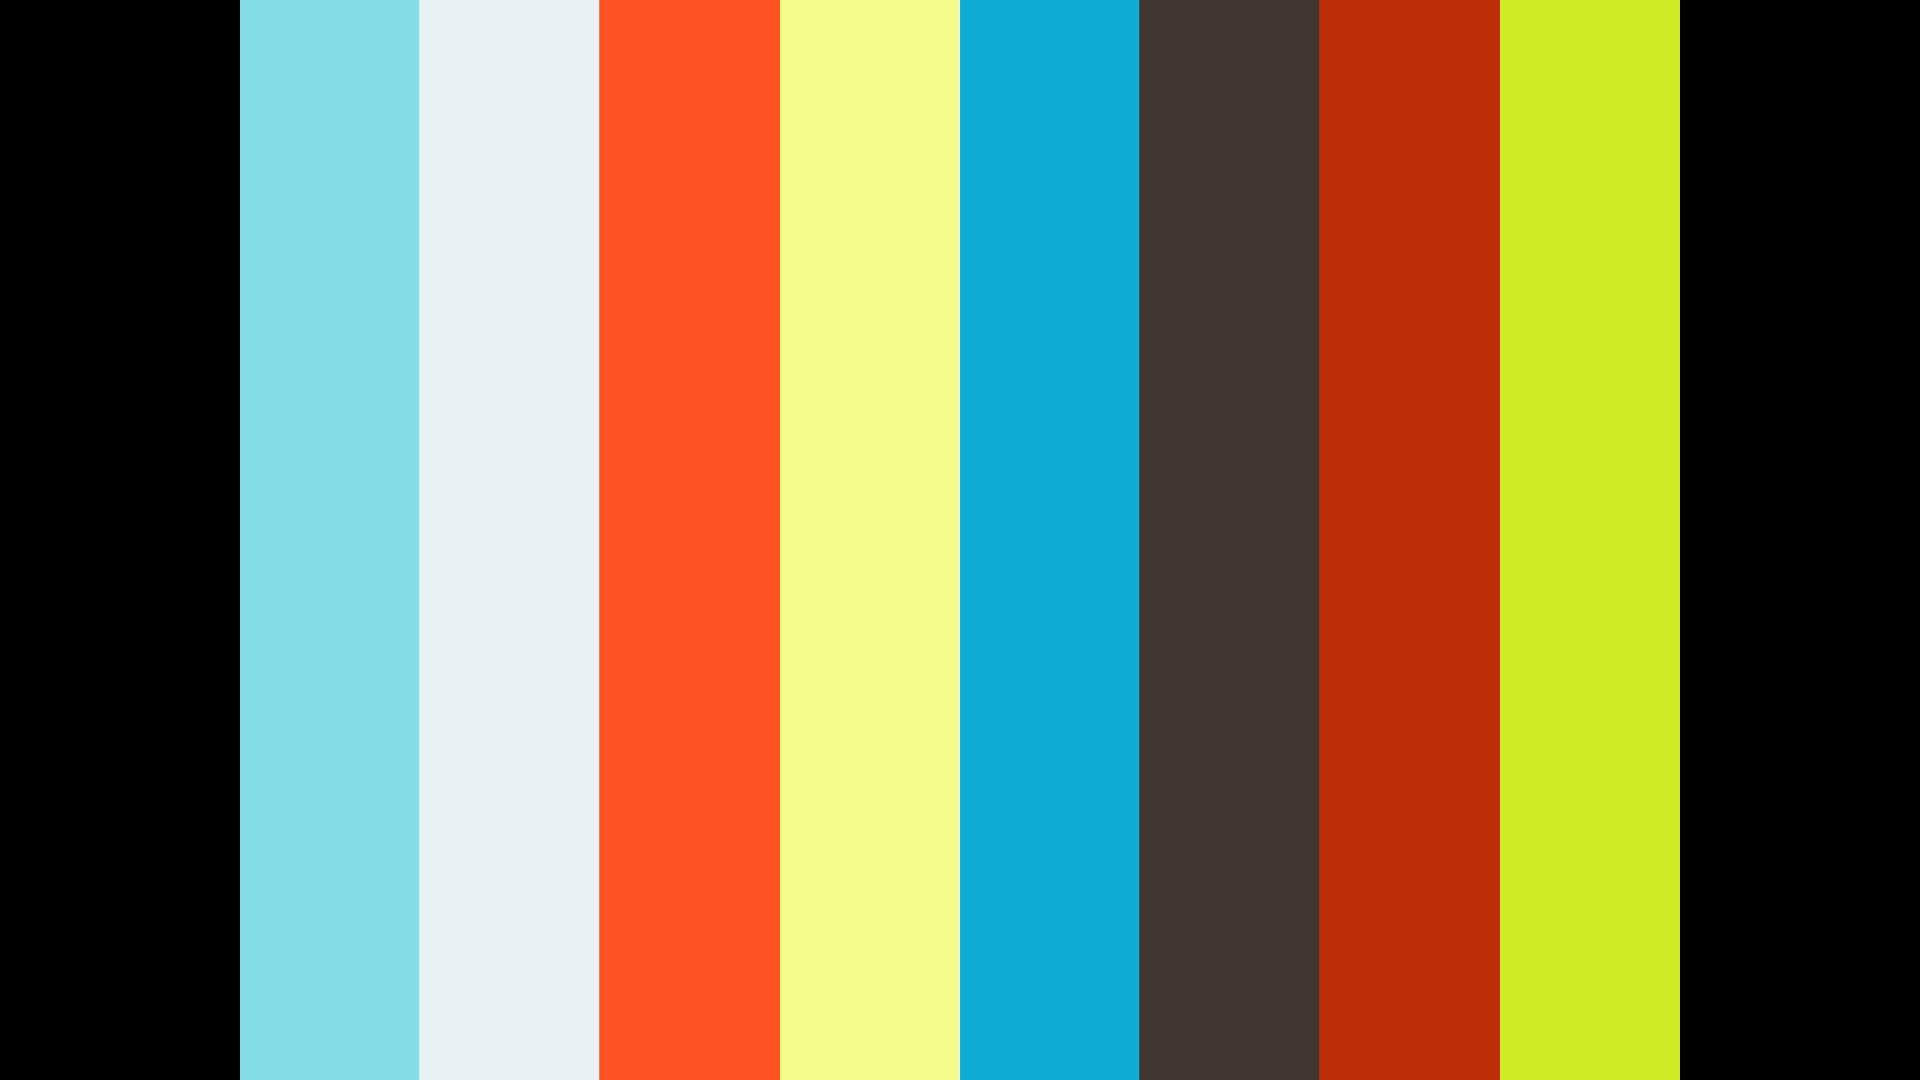 A 21 September 2019 Willie Norris - Die Here is my herder